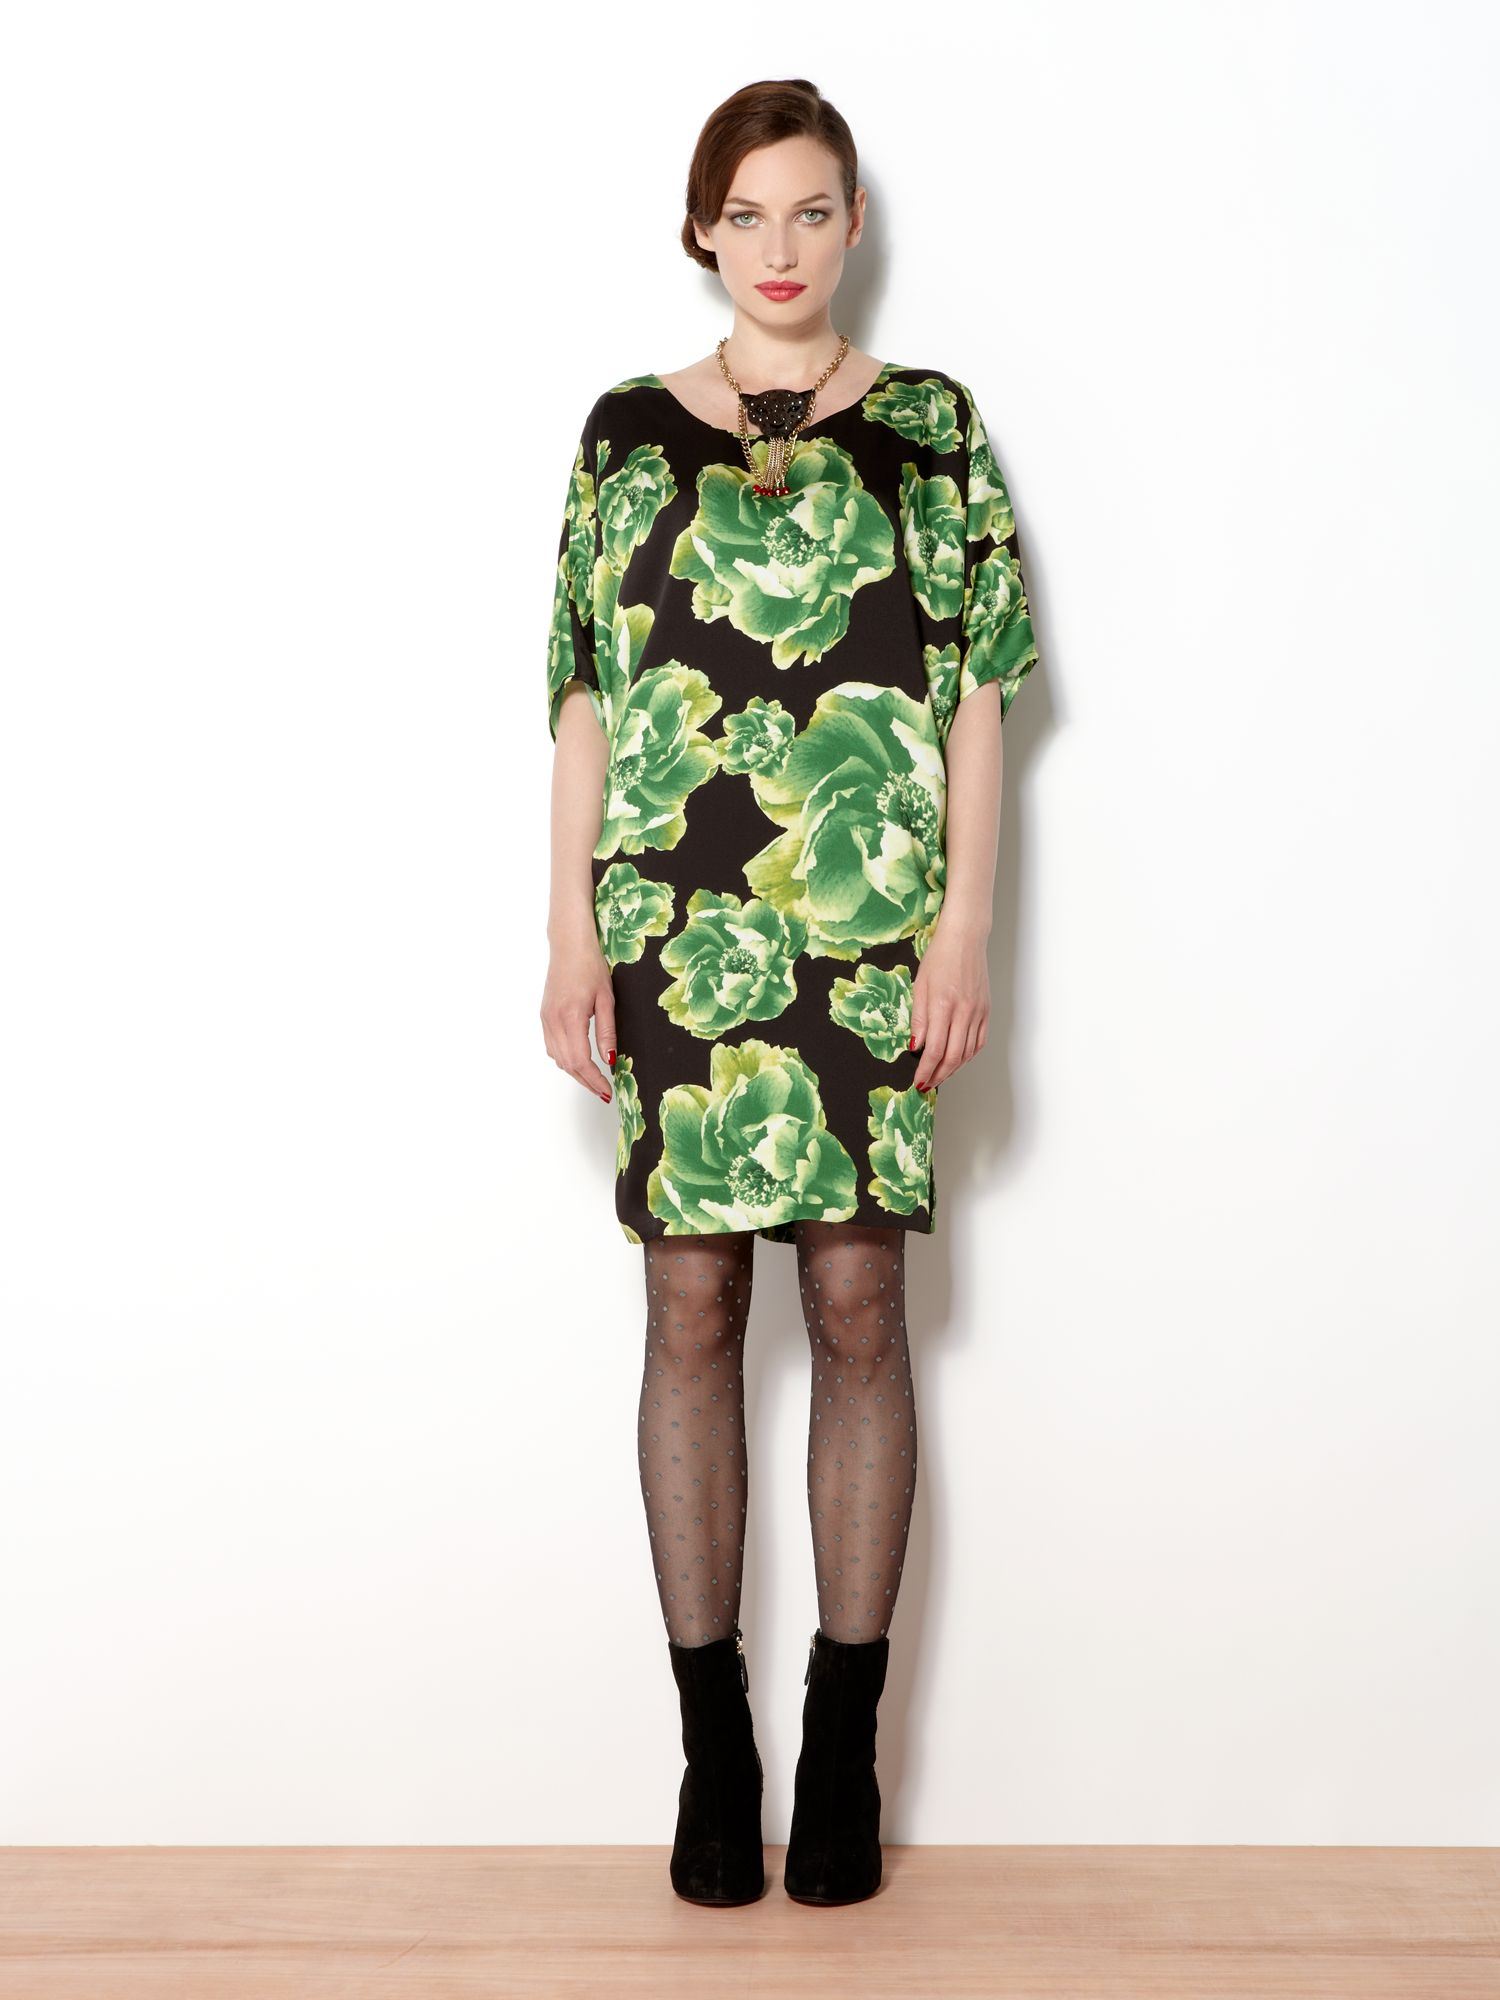 The cabbage rose shift dress